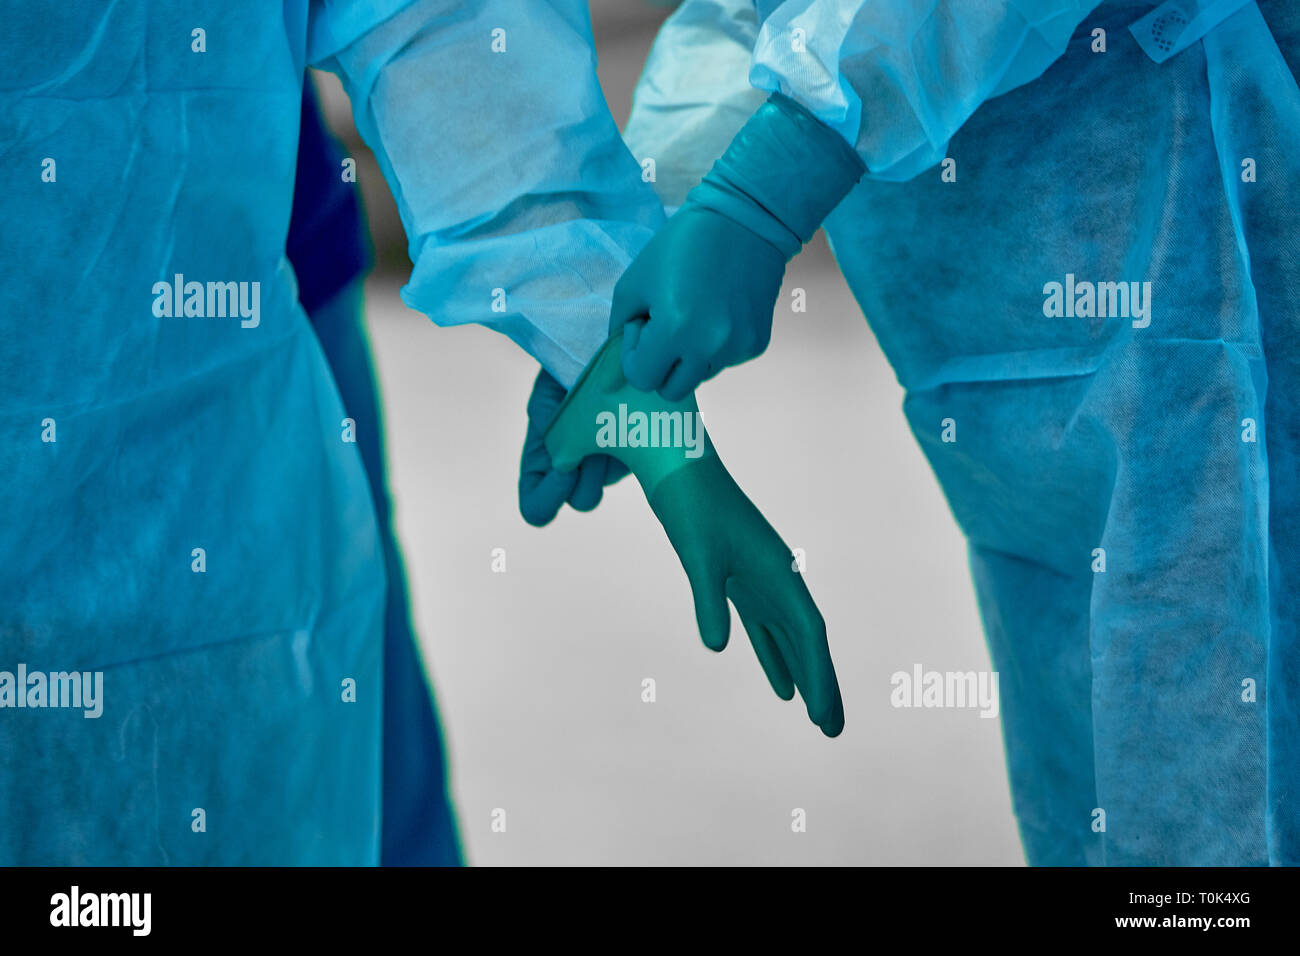 Assistant helps the surgeon put on latex gloves before the operation. A team of surgeons in the operating lamp background preparing for surgery - Stock Image